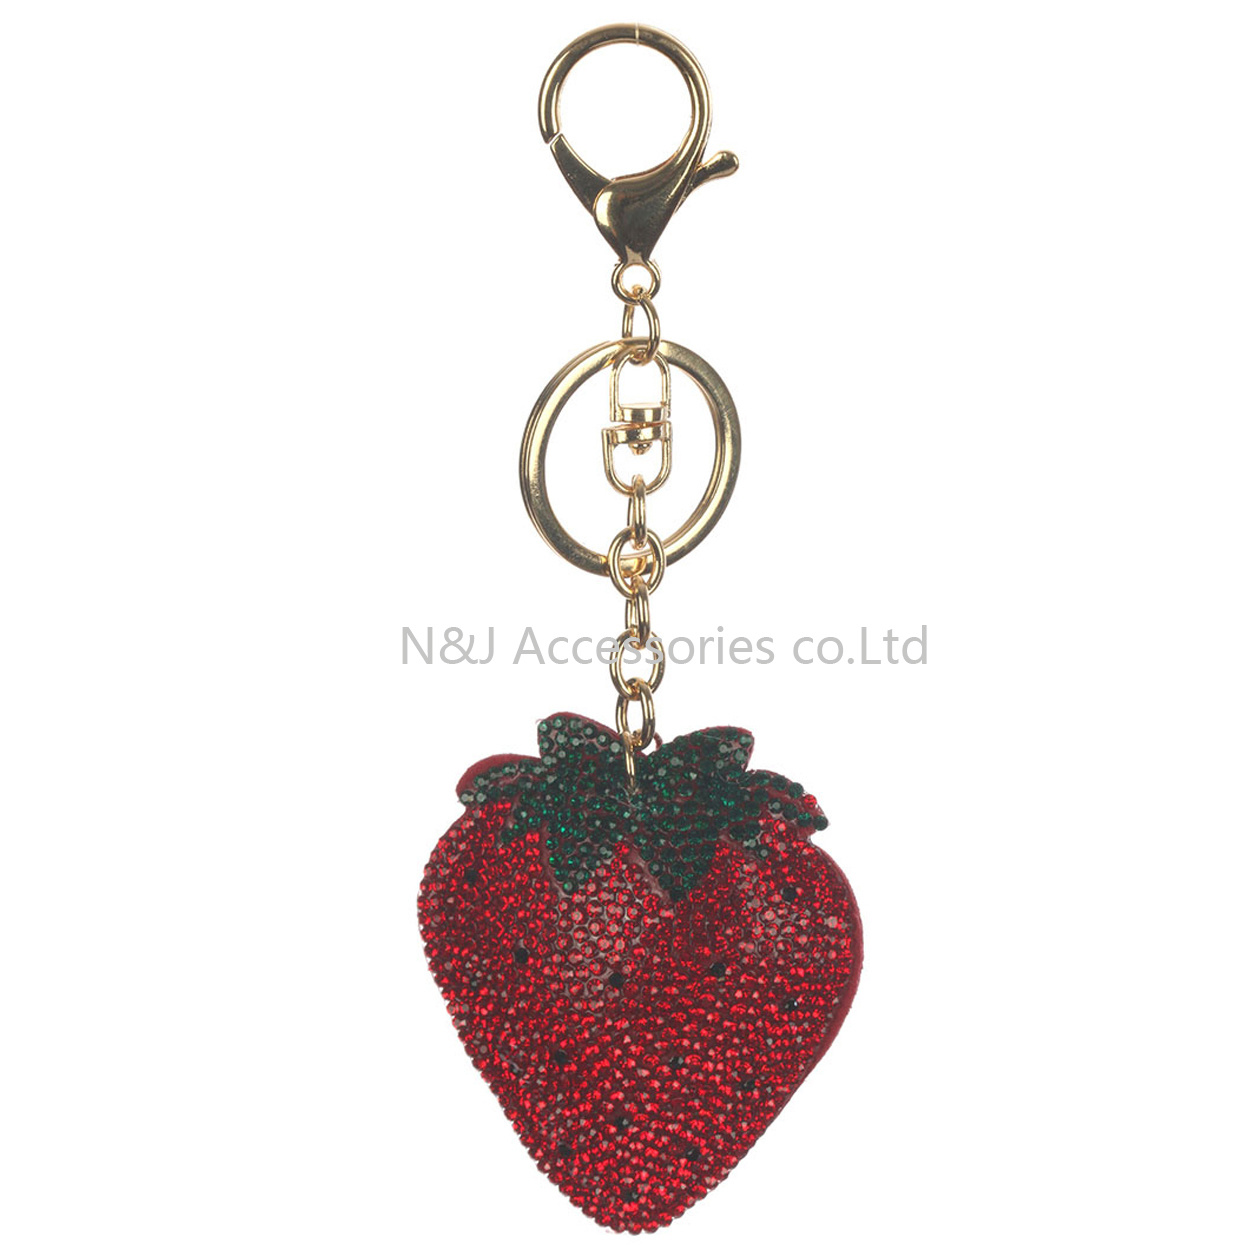 Fashion Stuffed Pillow Strawberry Bag Accessory Key Chains of Jewelry Gift